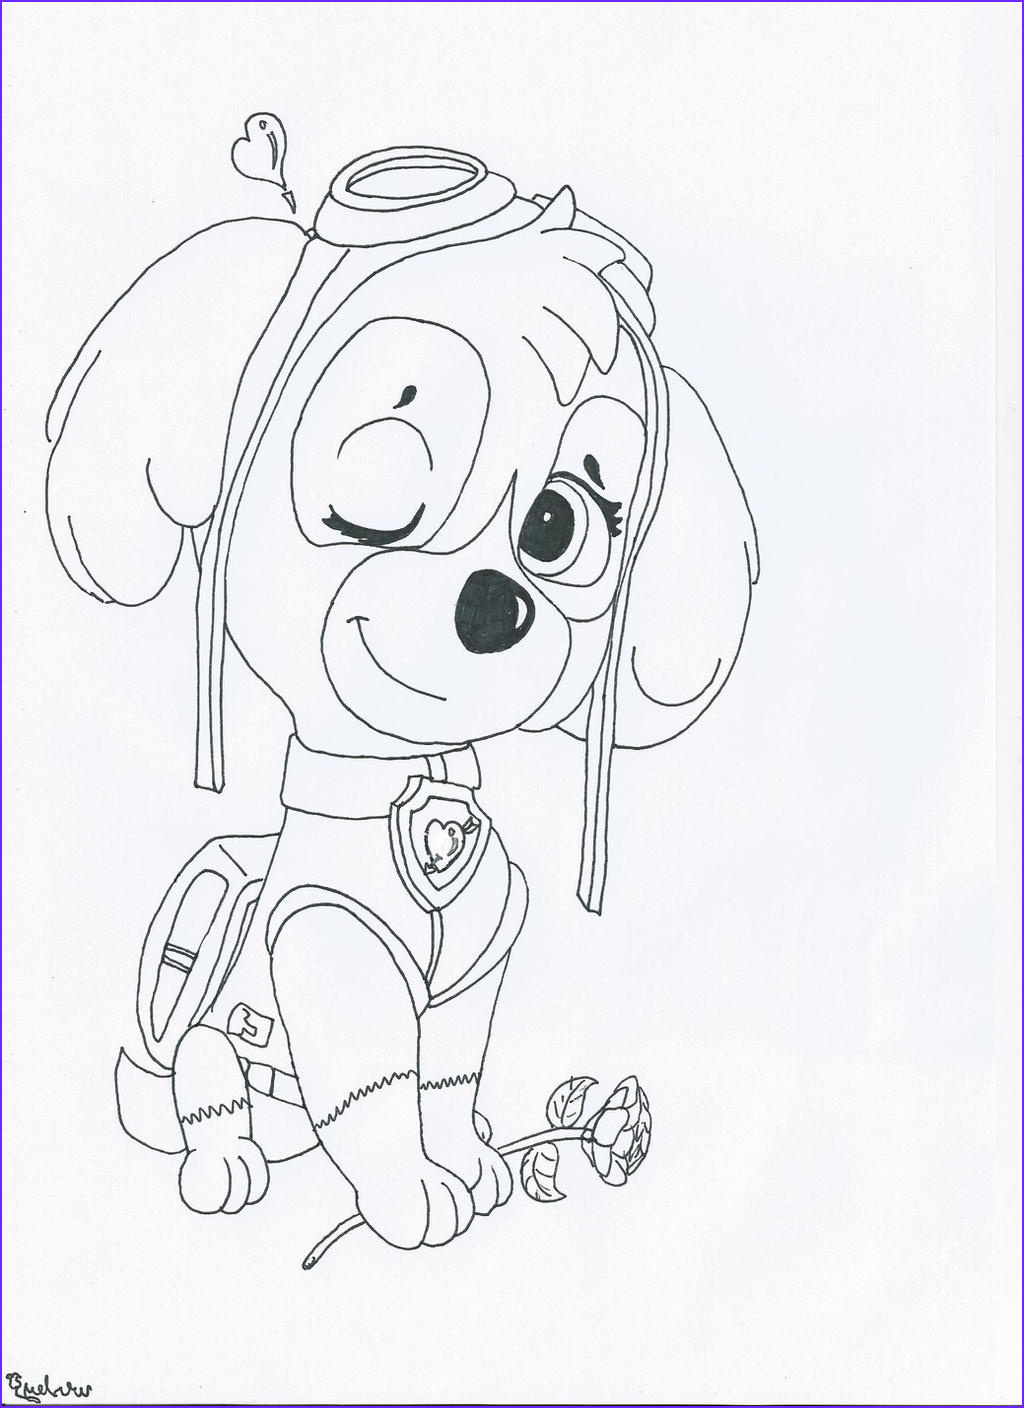 sky from paw patrol coloring page sketch templates